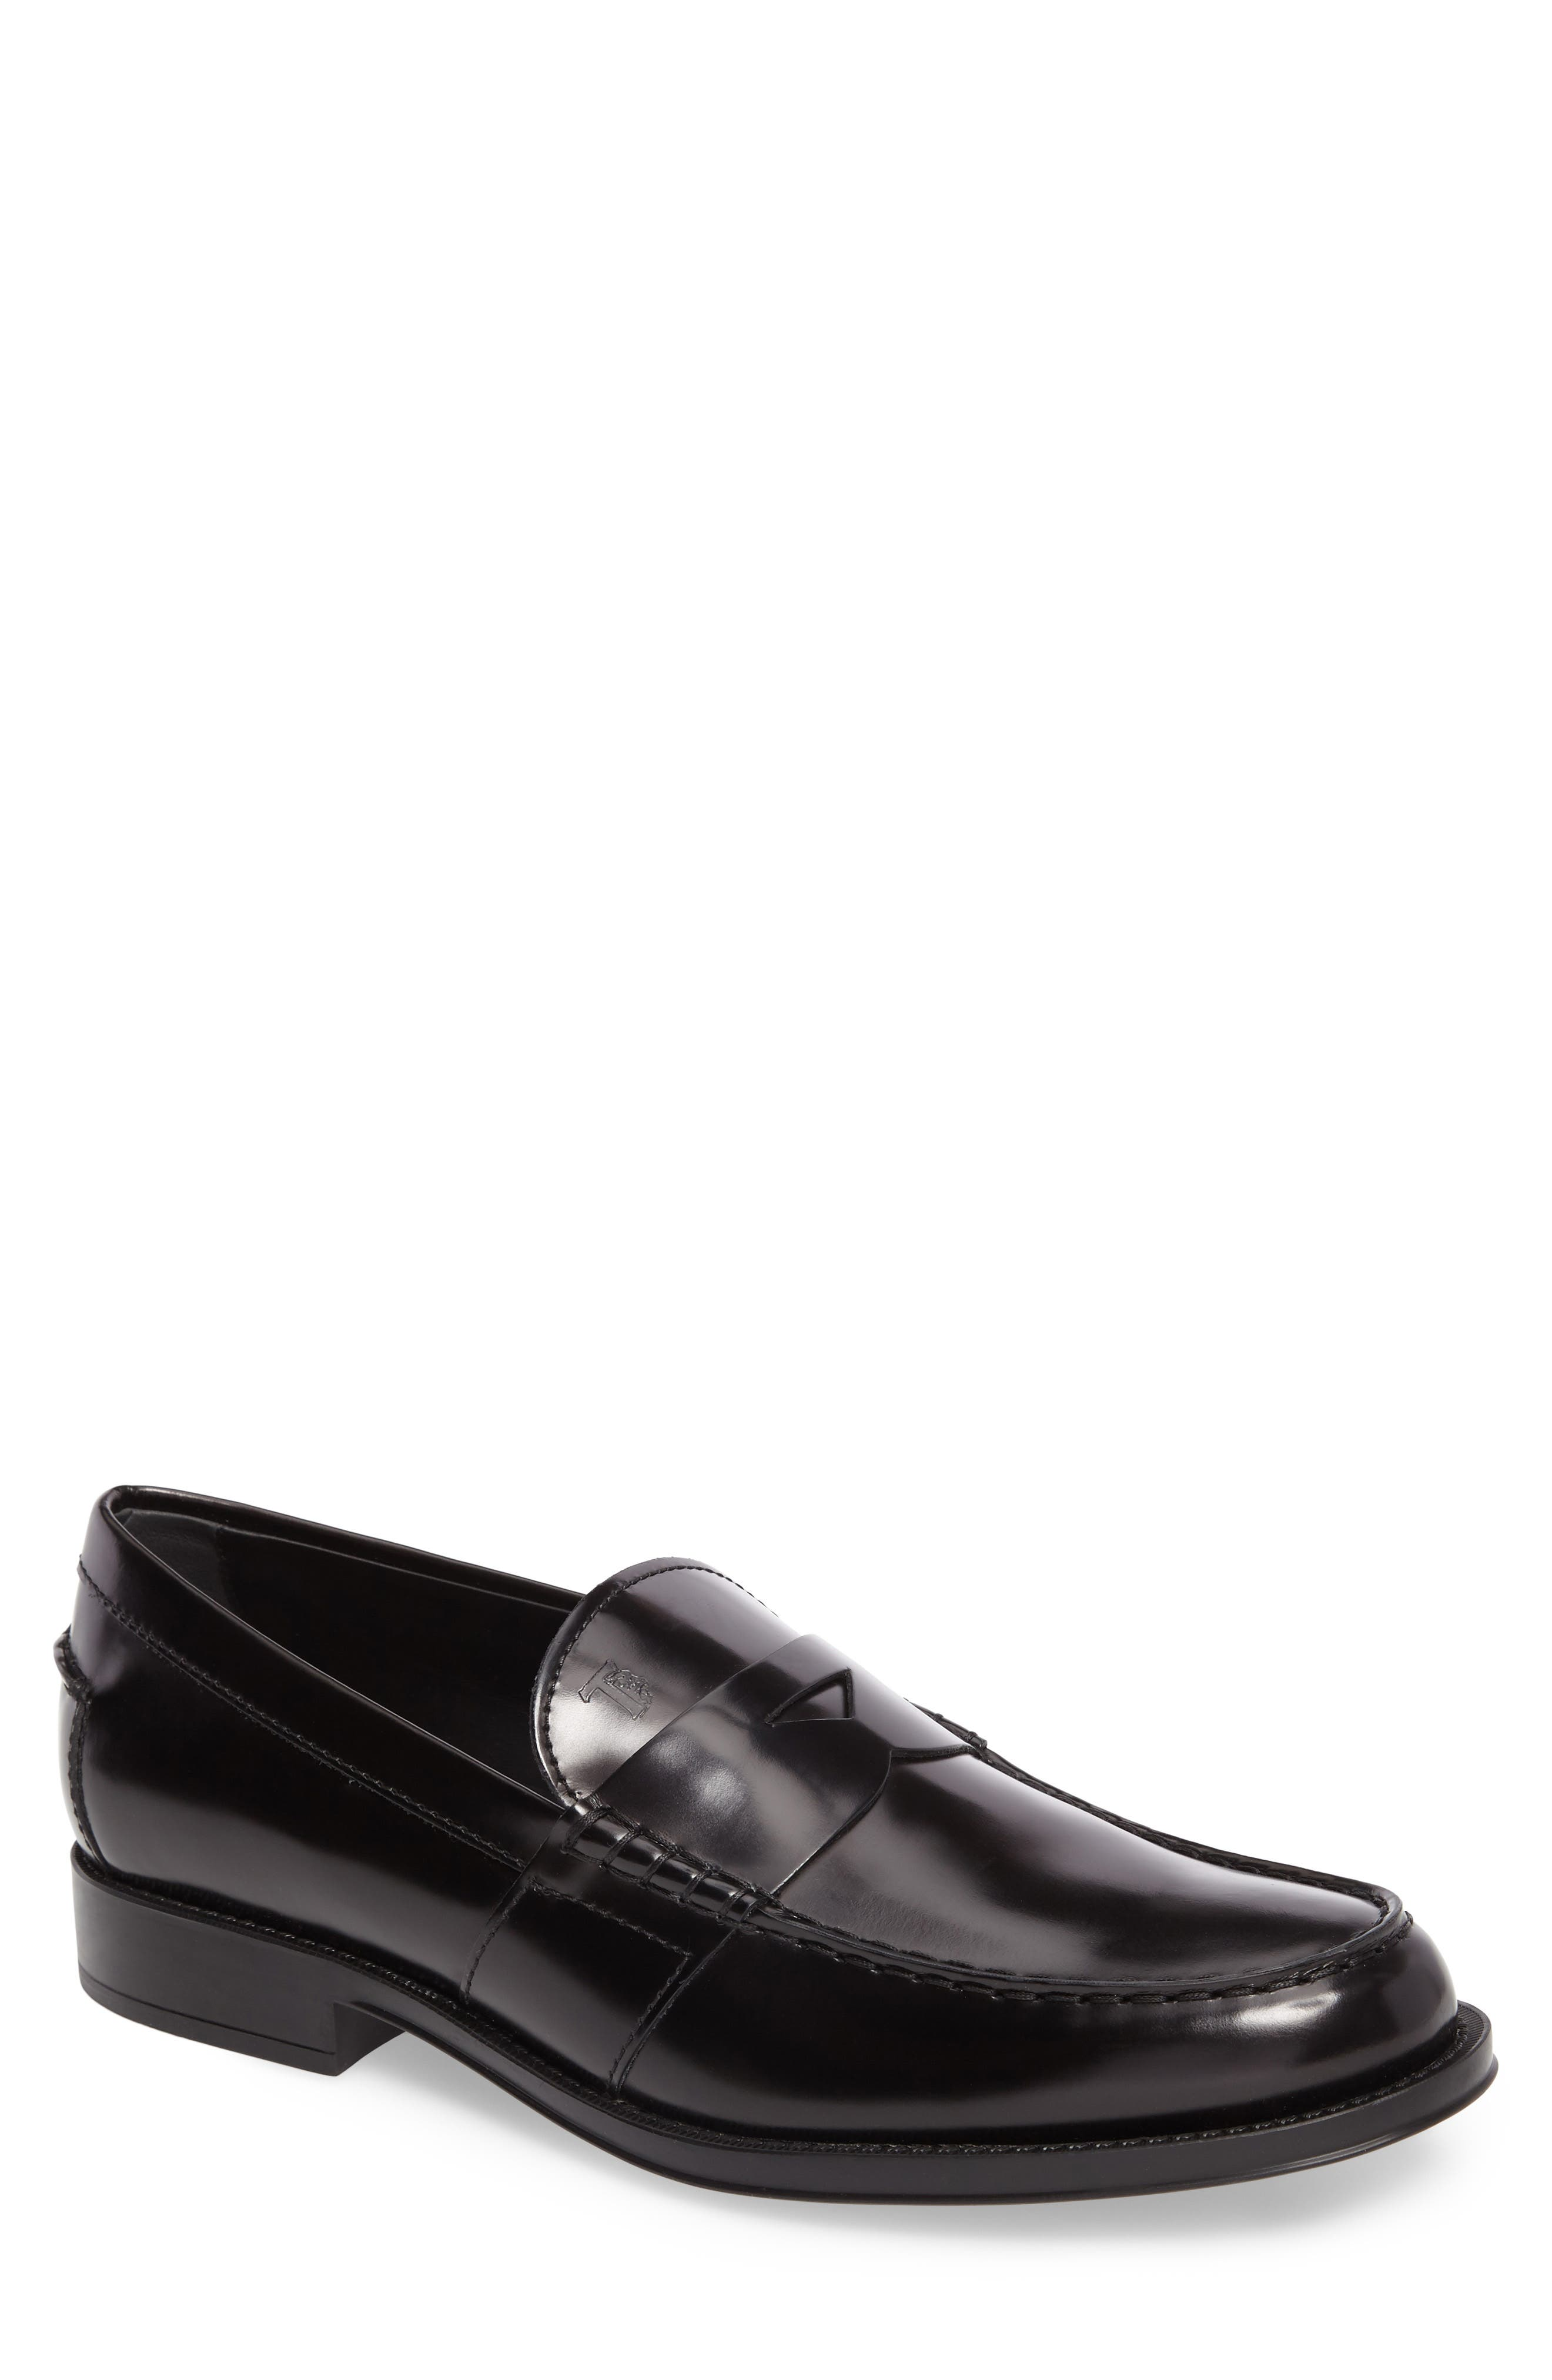 Tods Penny Loafer,                             Main thumbnail 1, color,                             001